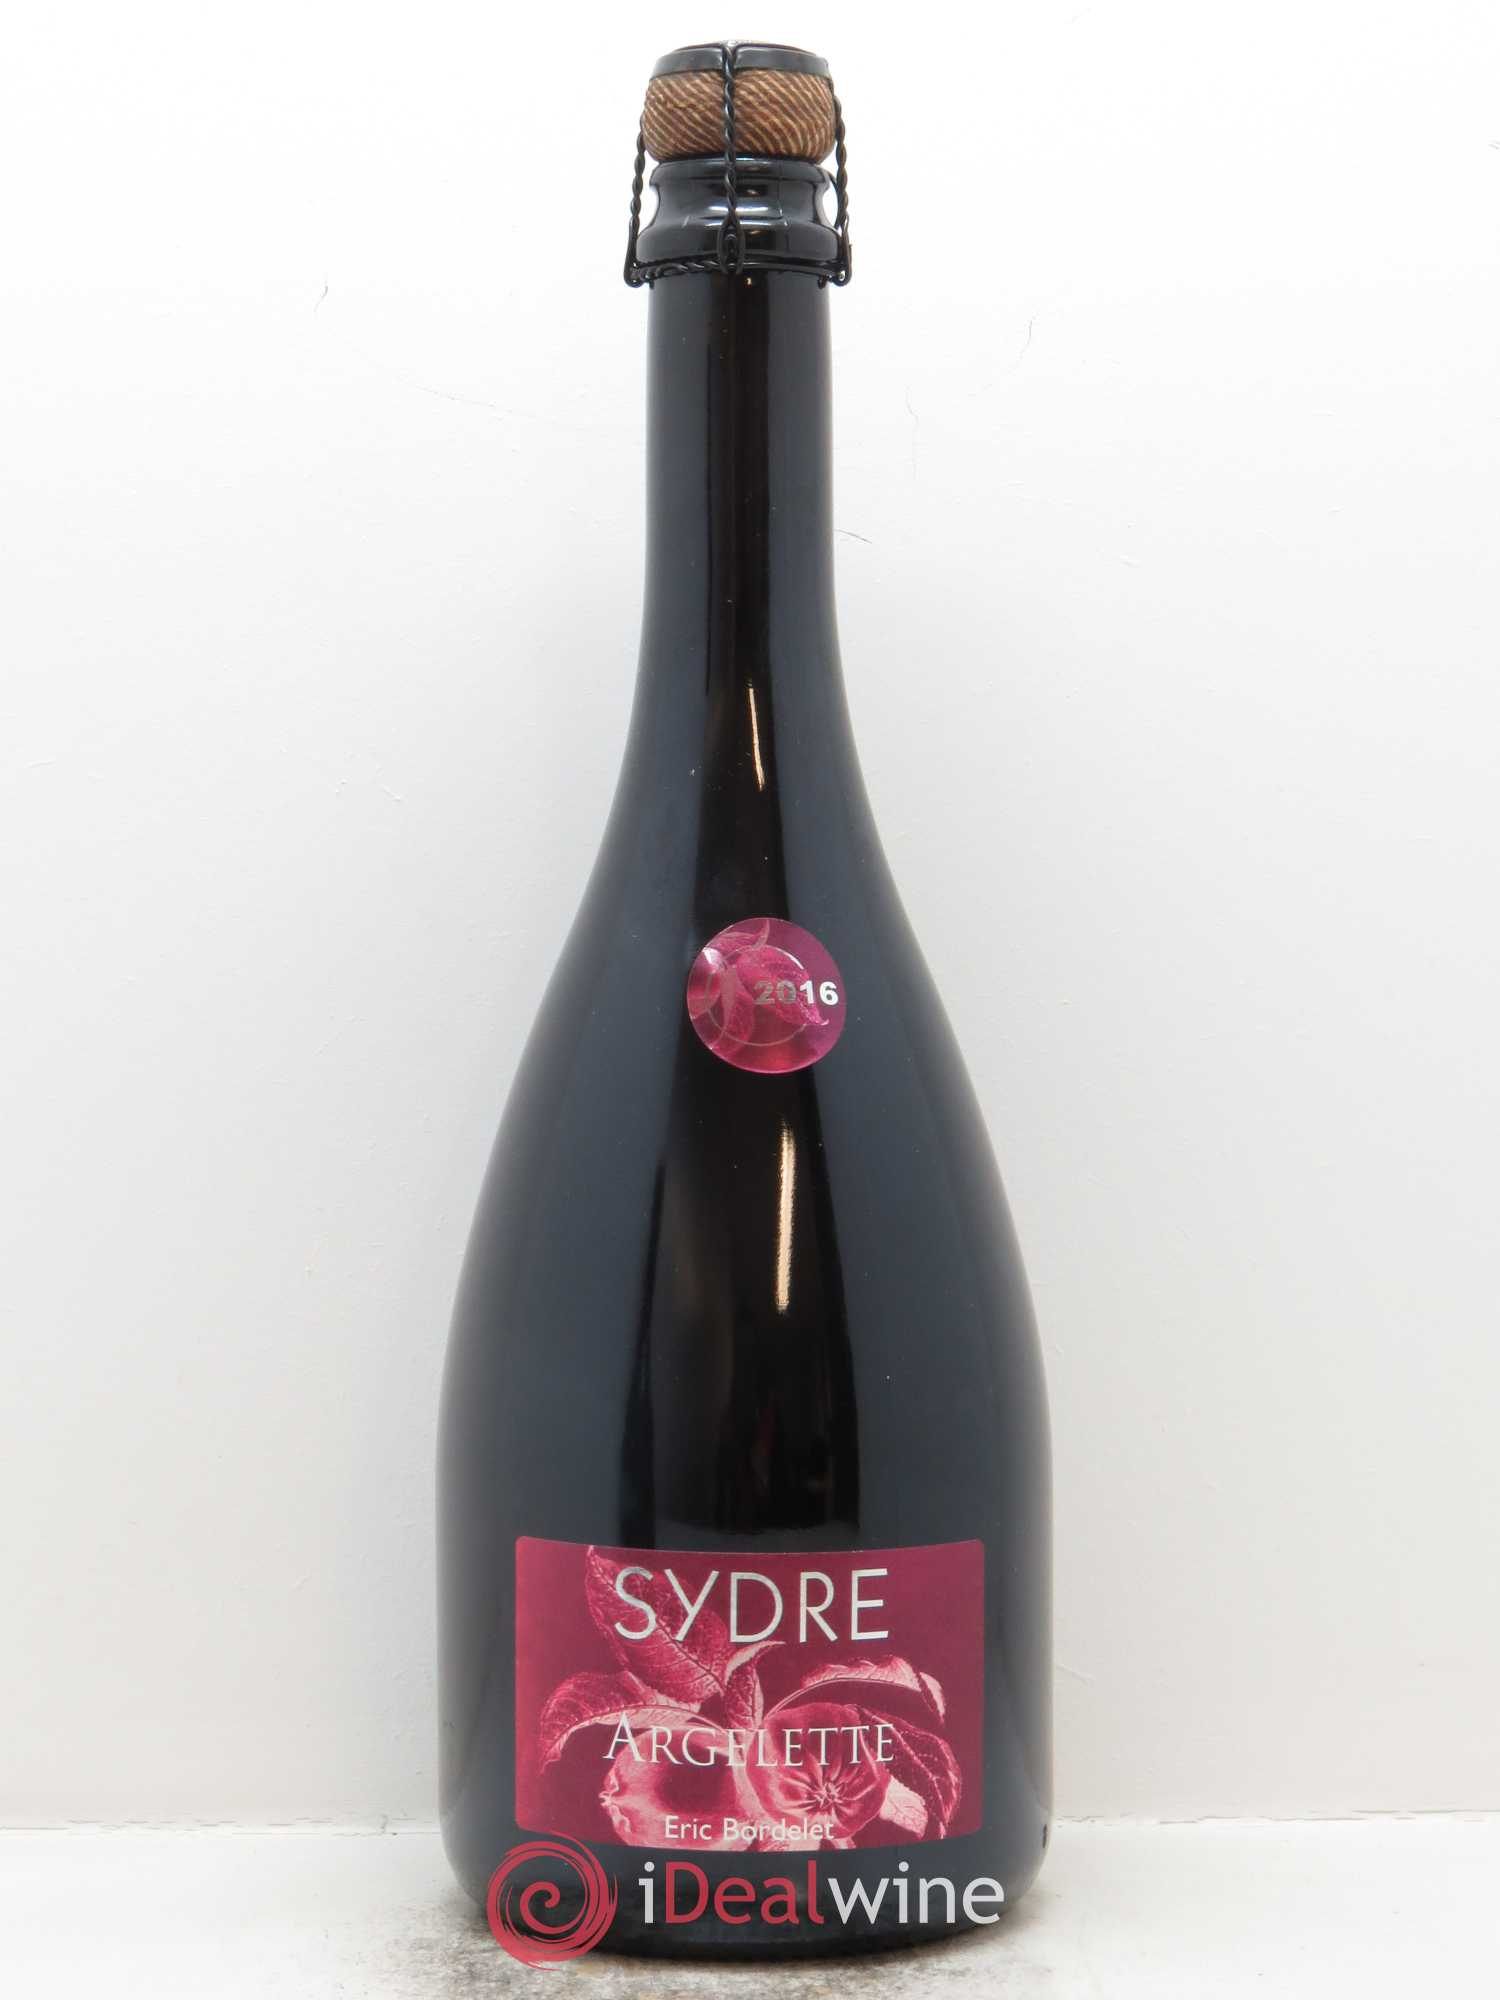 Mayenne Sydre Argelette Eric Bordelet  2016 - Lot of 1 Bottle